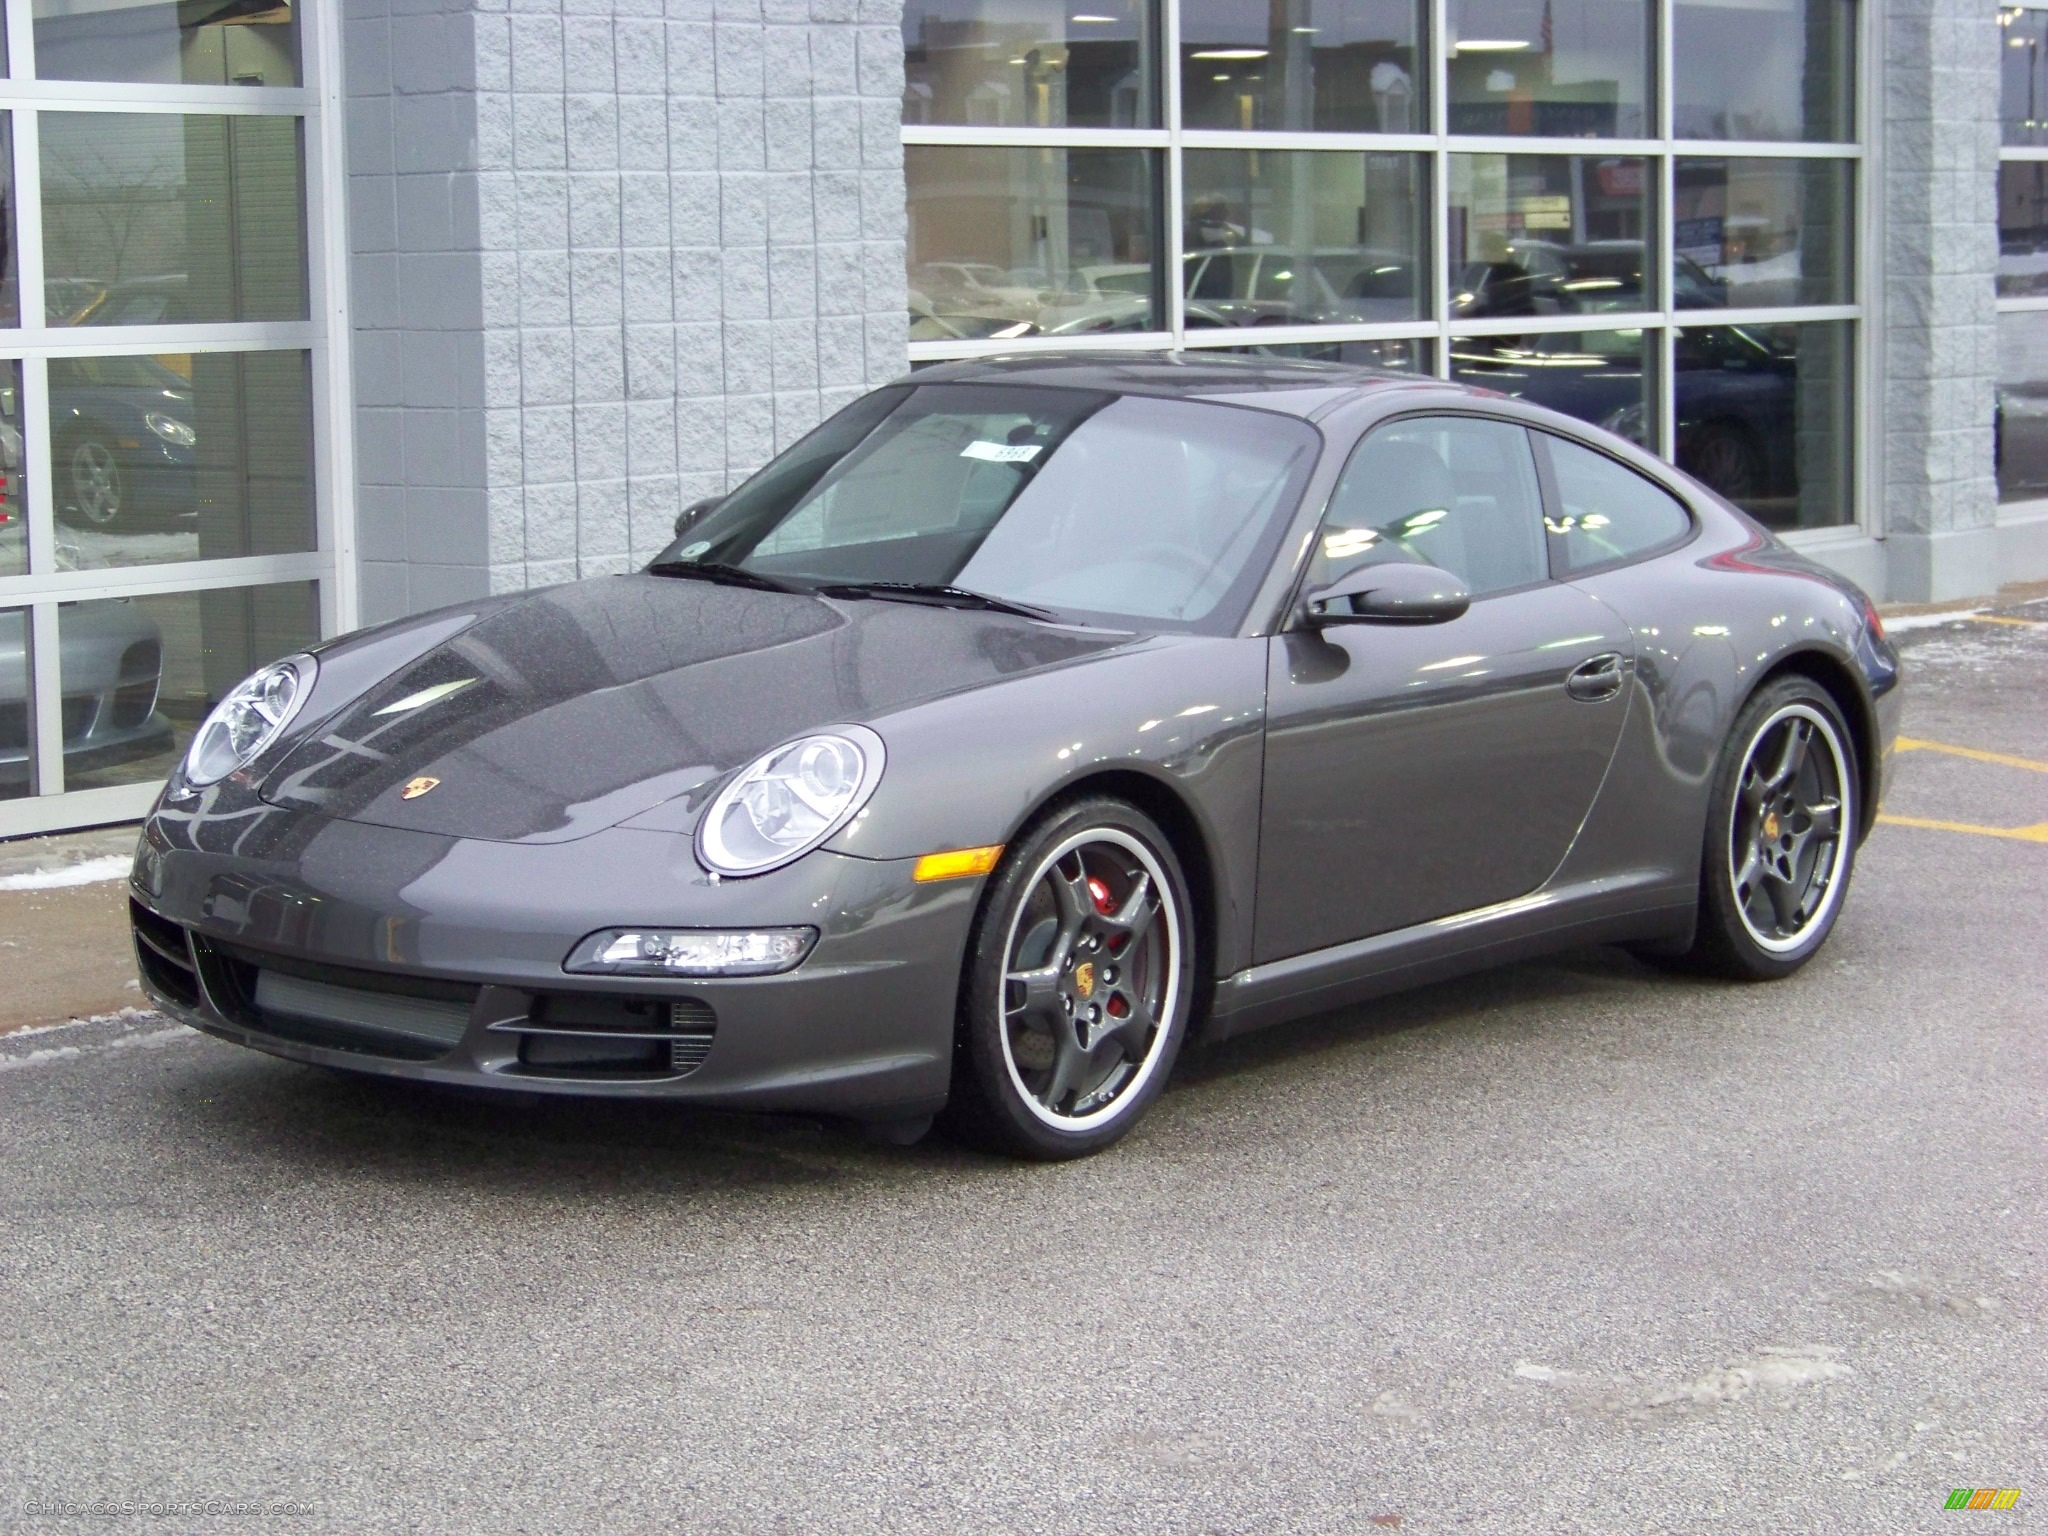 2008 porsche 911 carrera 4s coupe in slate grey metallic. Black Bedroom Furniture Sets. Home Design Ideas